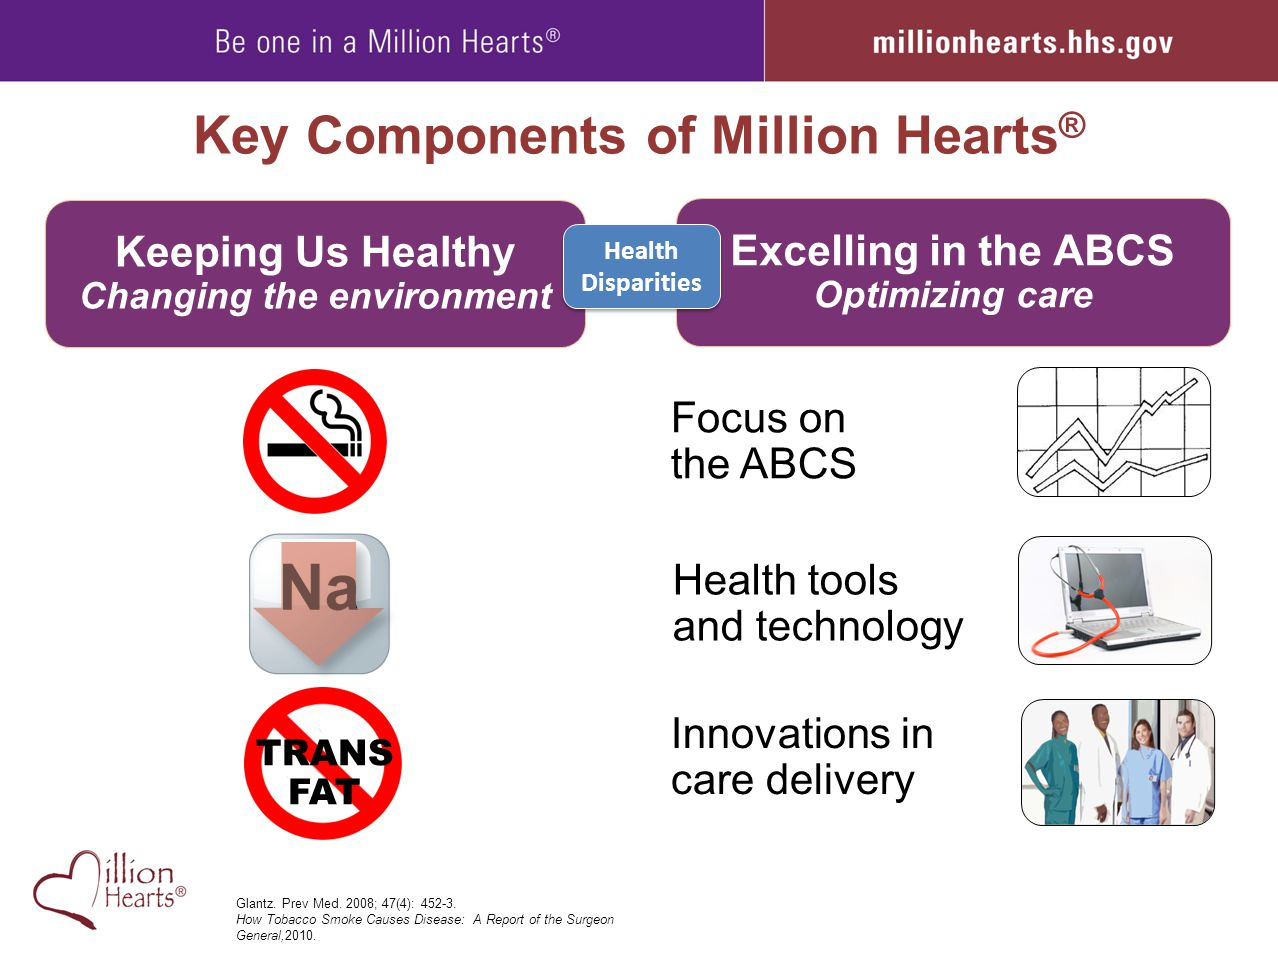 Key Components of Million Hearts ® Excelling in the ABCS Optimizing care Focus on the ABCS Health tools and technology Innovations in care delivery Ke